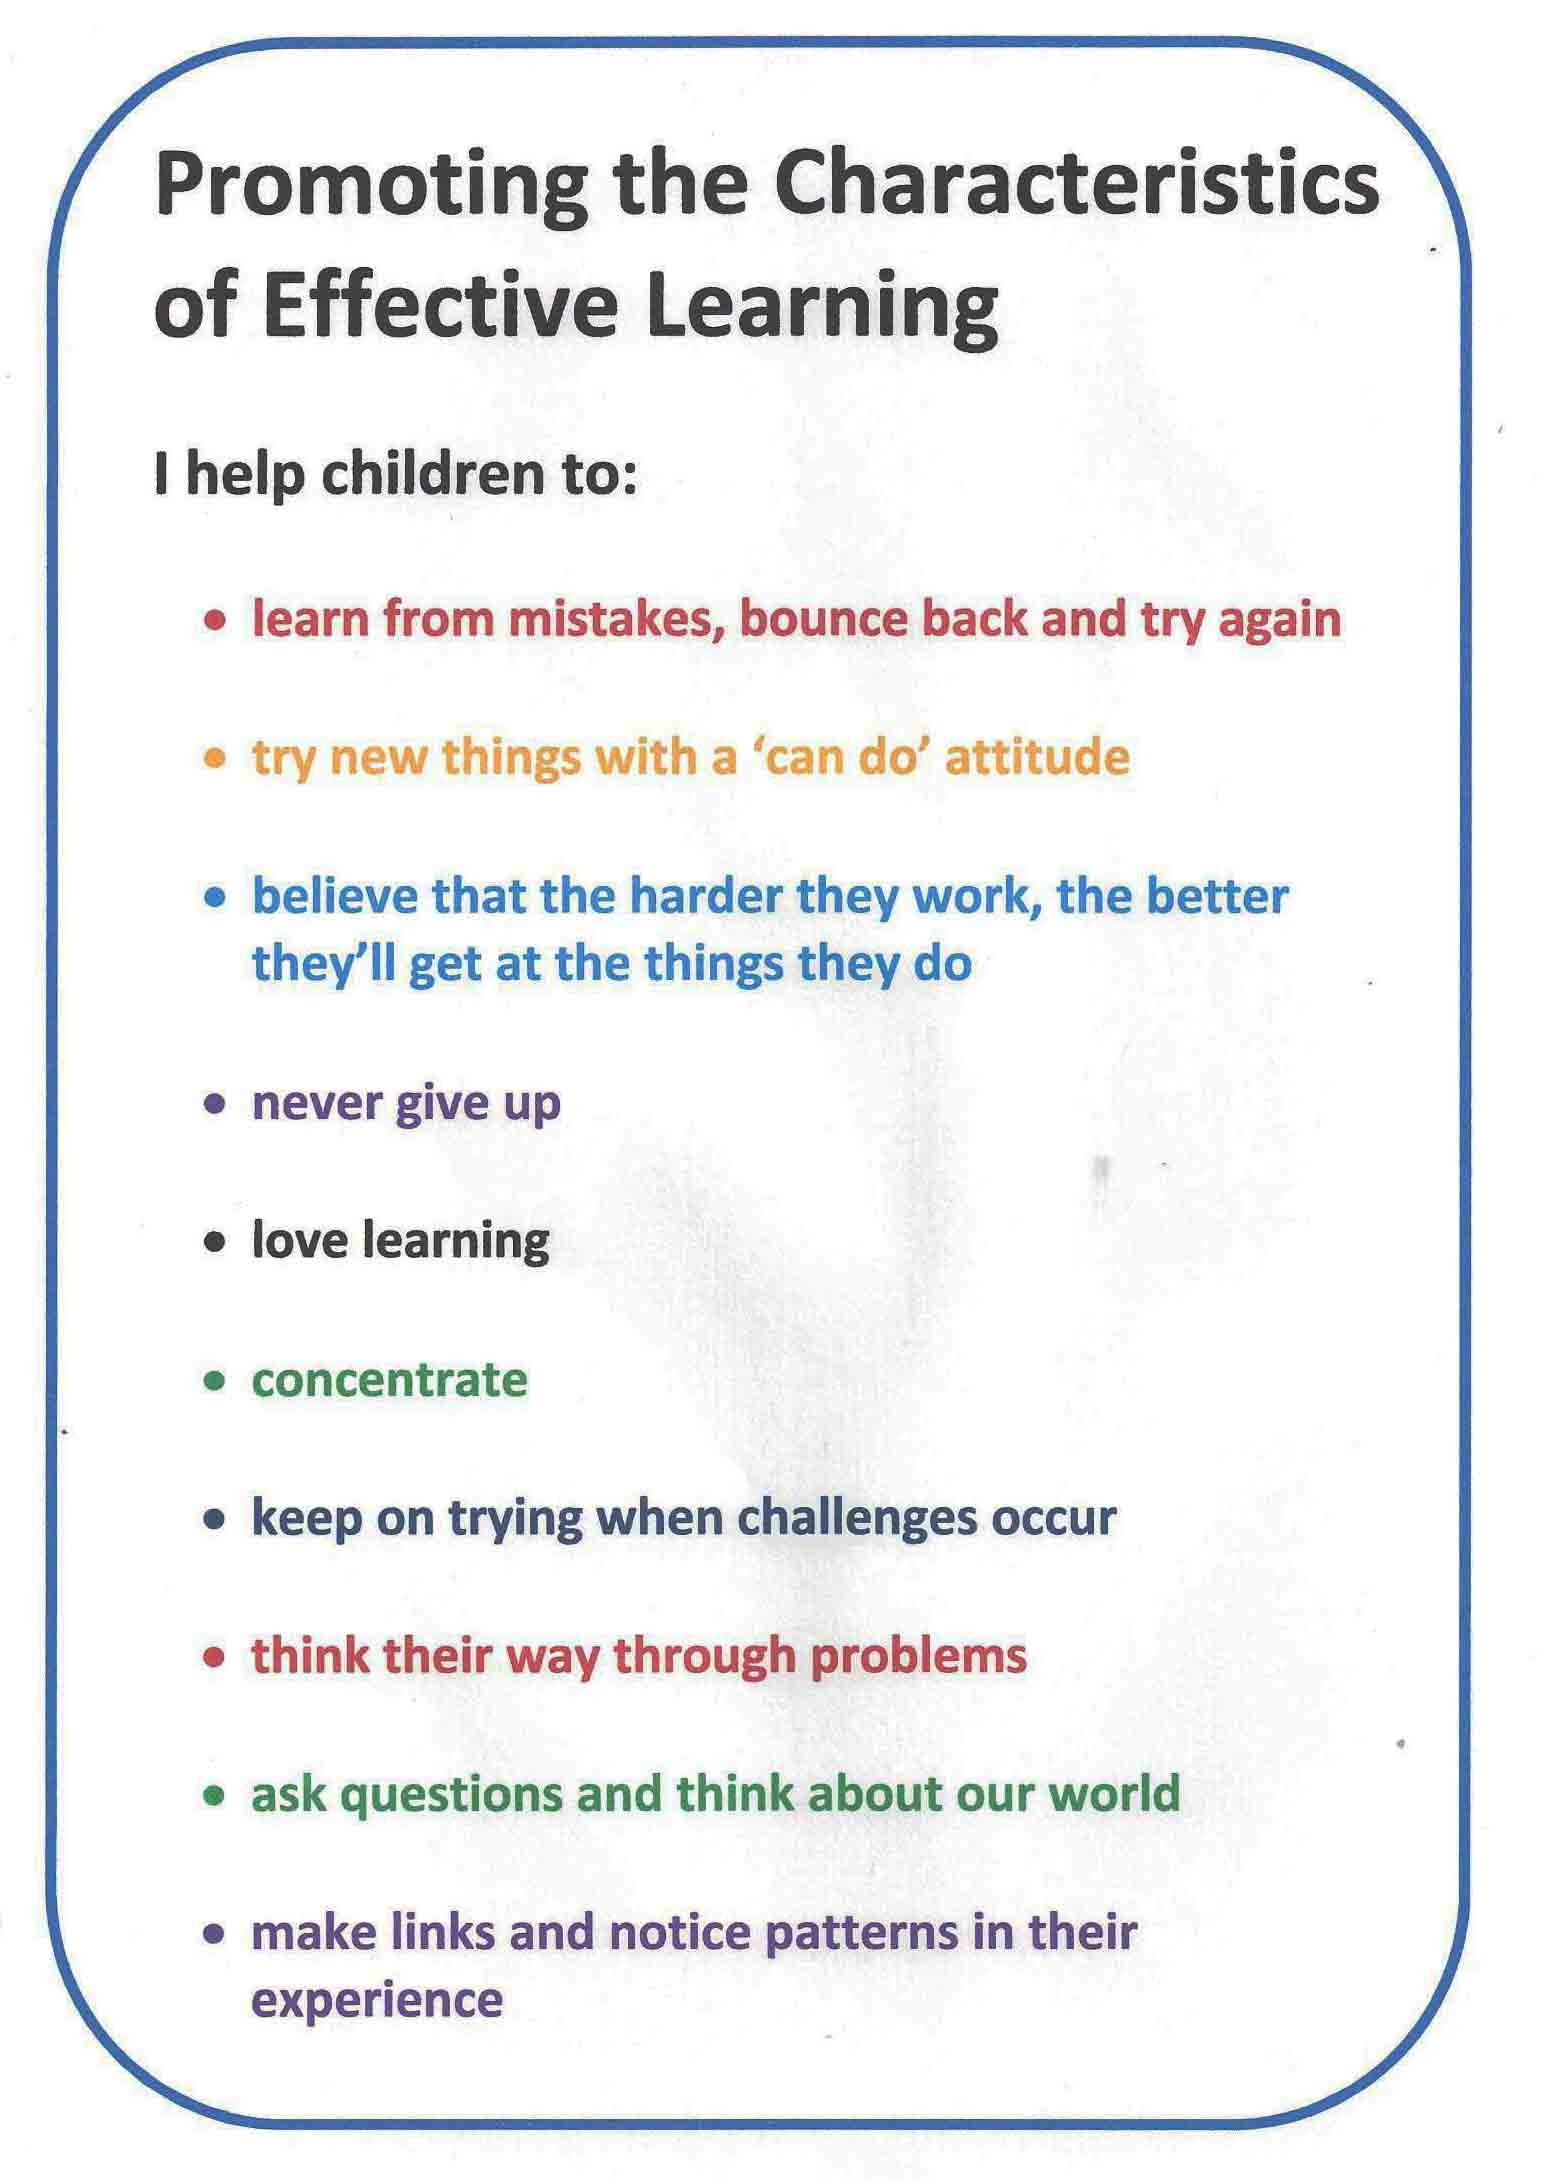 10 Ways For Childminders To Put The Characteristics Of